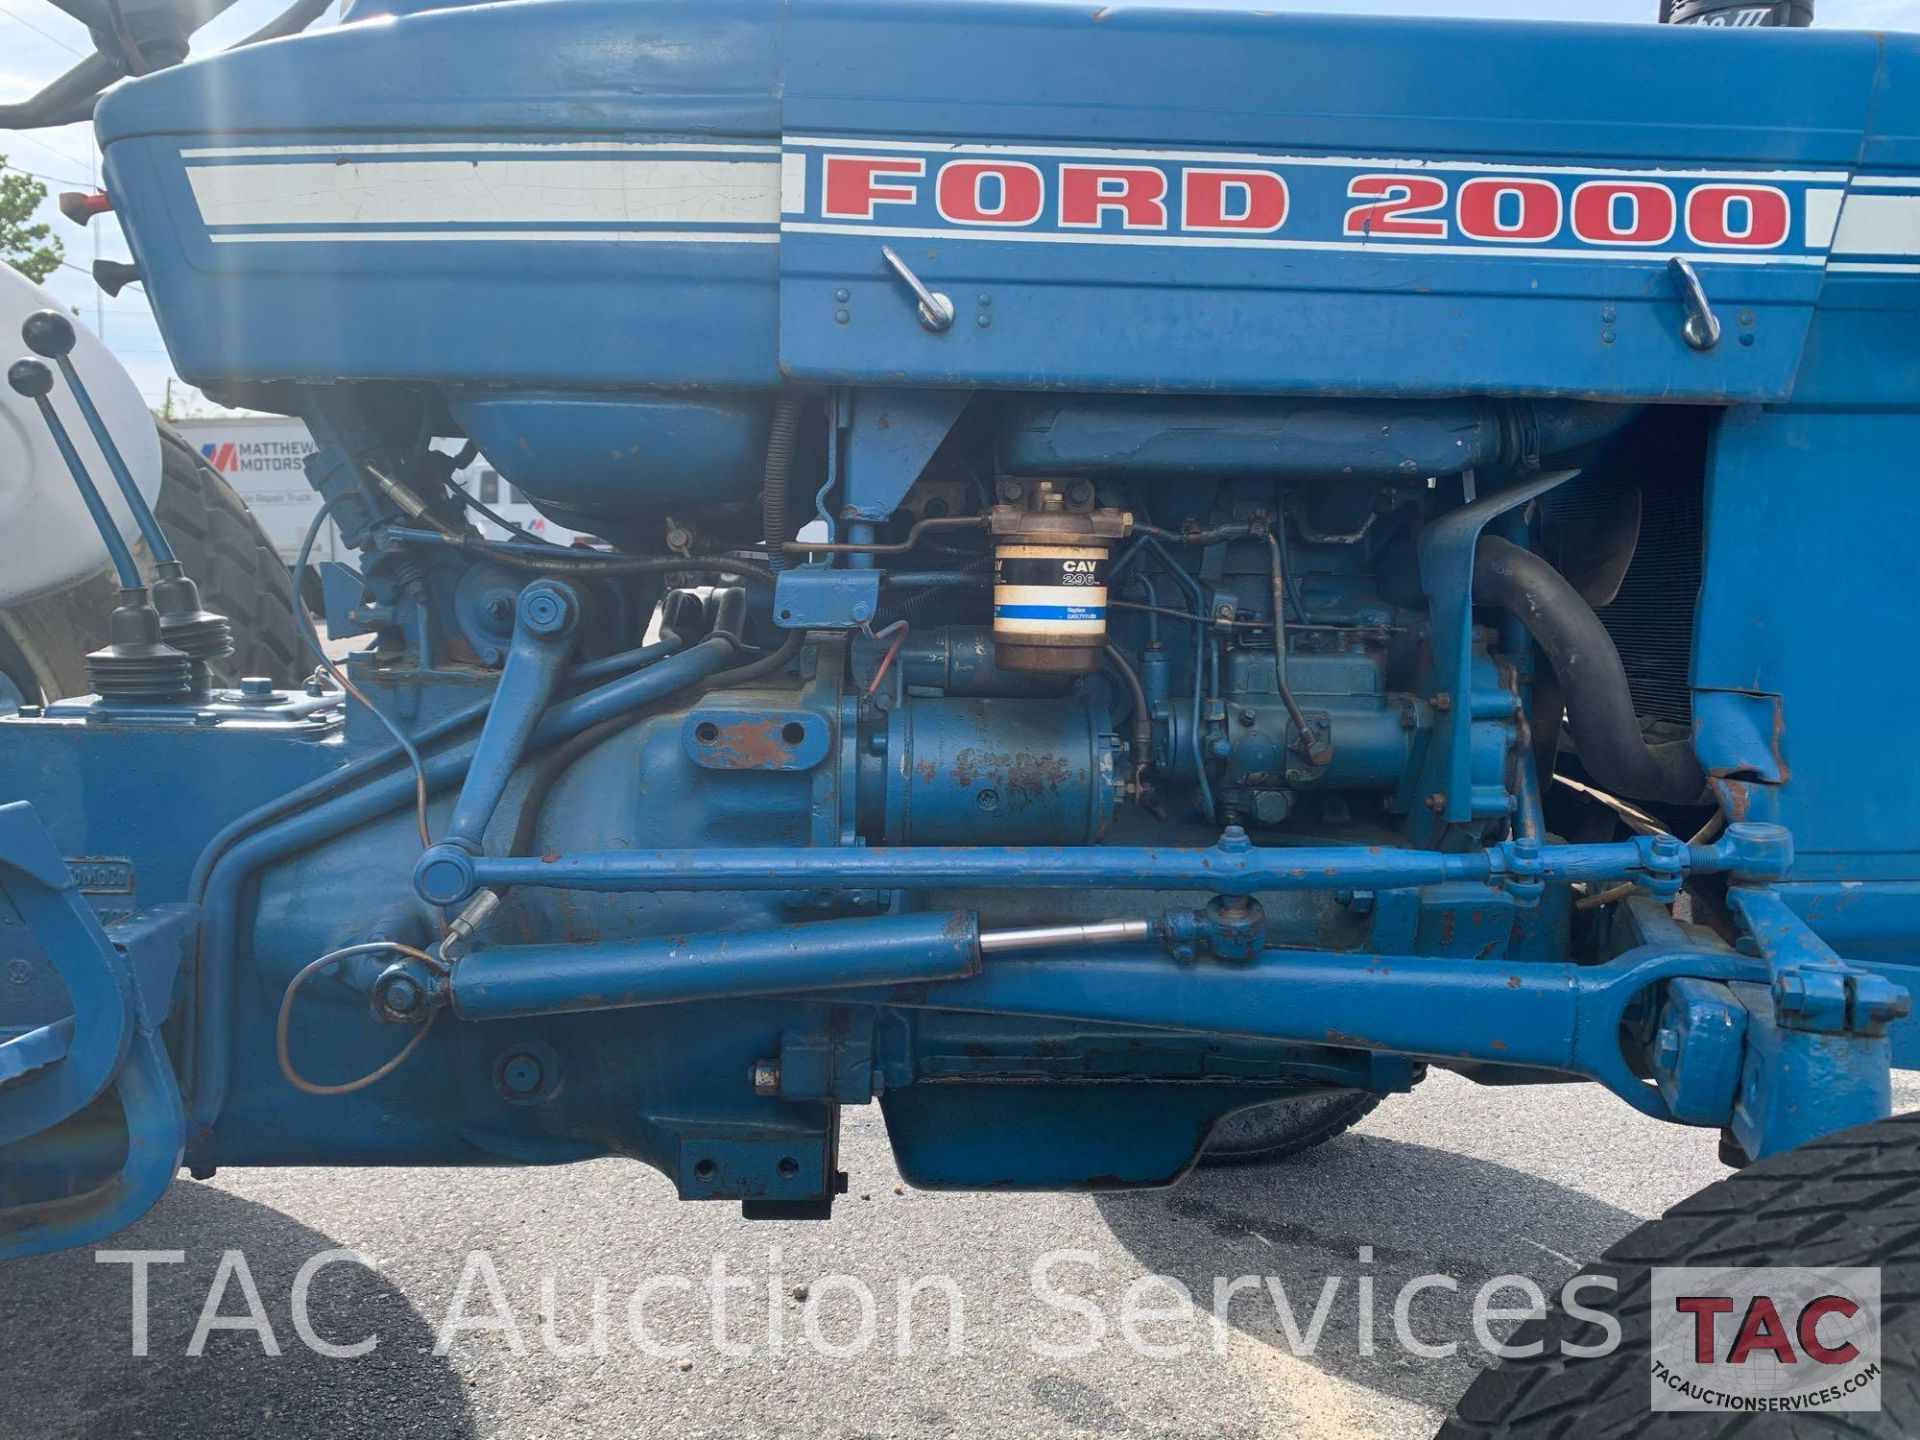 Ford 2000 Farm Tractor - Image 12 of 28